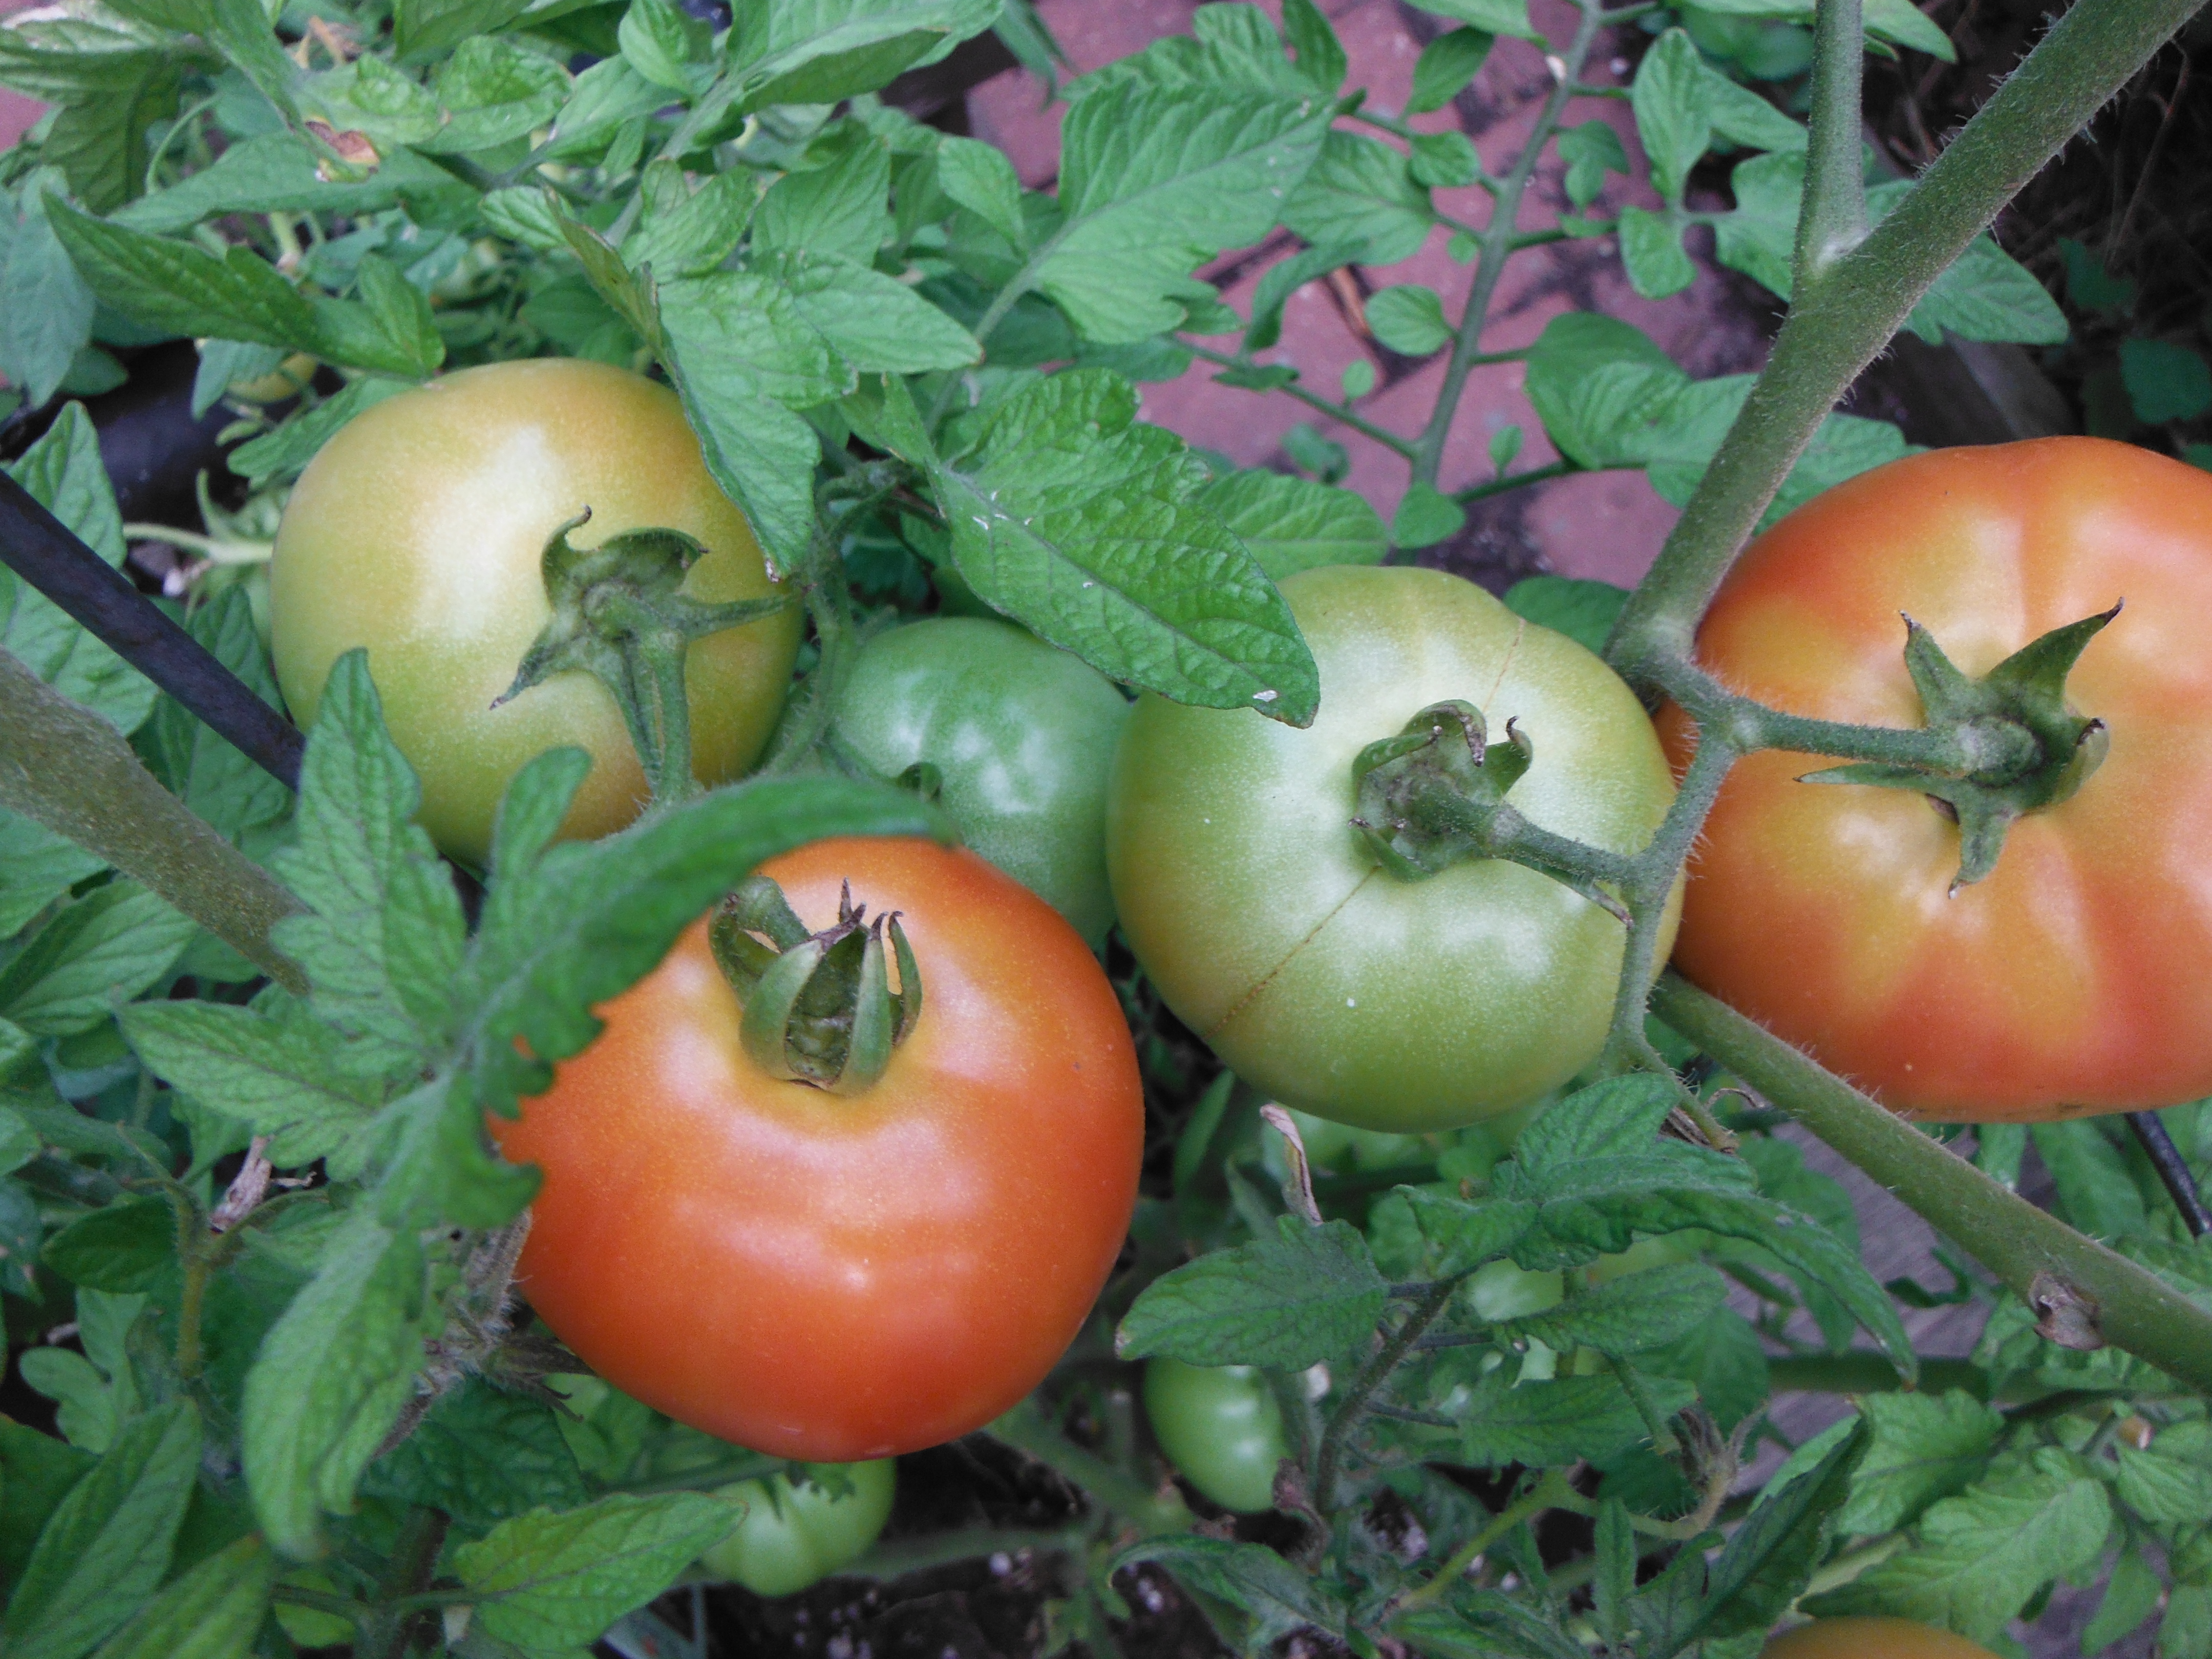 The ripening tomatoes